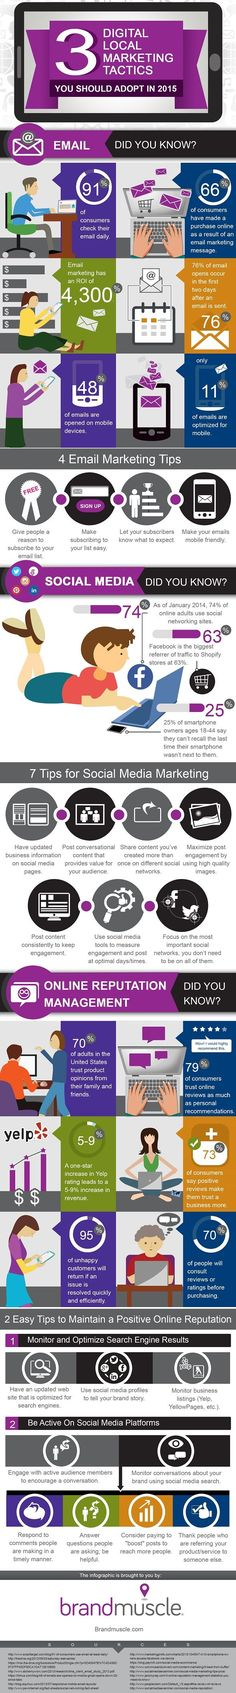 Digital Local Marketing Tactics You Must Use in 2015 [INFOGRAPHIC] #socialmedia #marketing #infographic